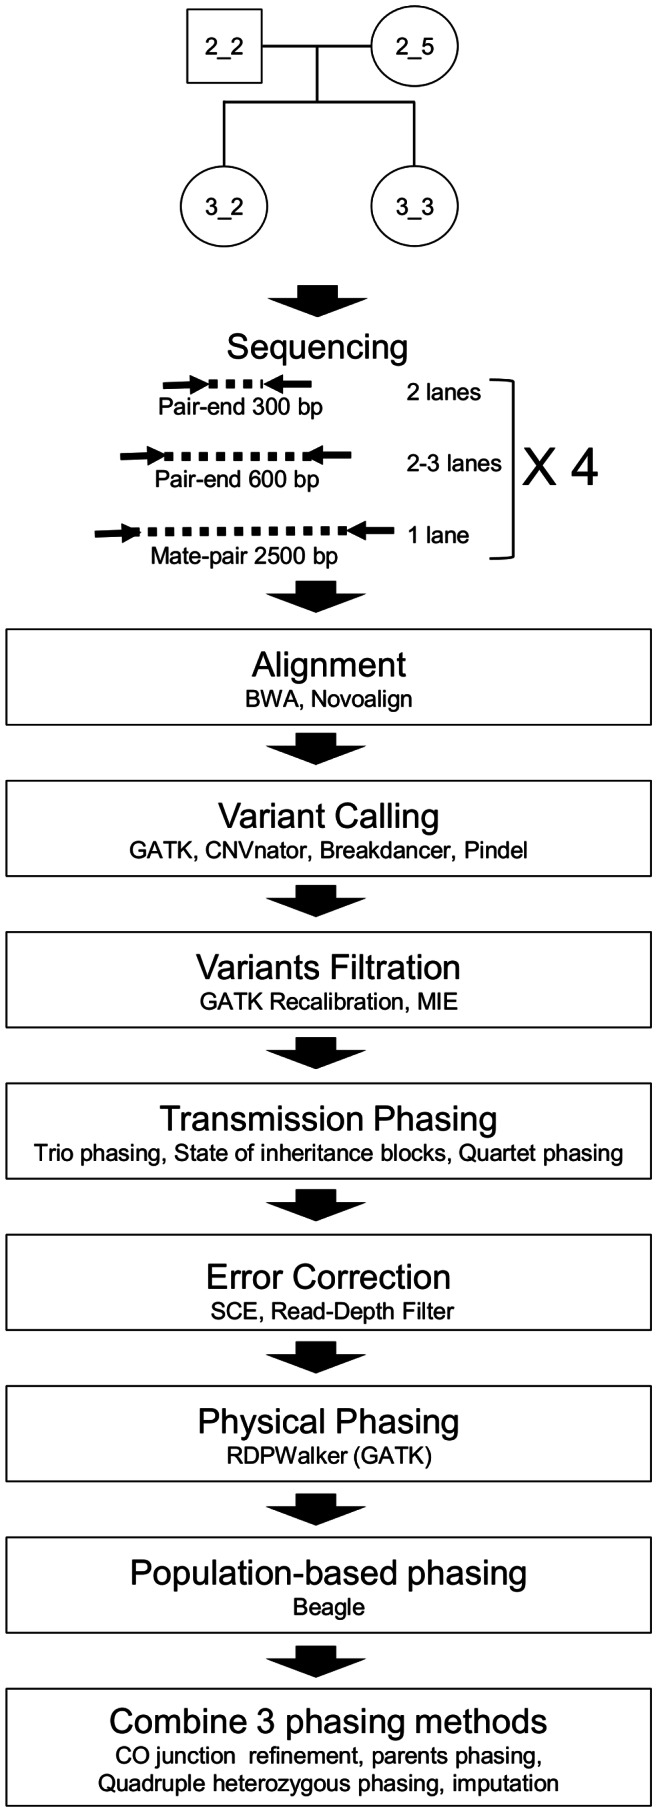 Sequencing strategy. Libraries of three different sizes were prepared from each member of the quartet from family FNY01 and sequenced on an Illumina HiSeq 2000. Reads were then aligned using BWA and Novoalign and variants were called and filtrated. Then, MIEs were detected. After that, variants were phased by transmission and errors were called. Phasing was then refined by physical and population-based approaches. Finally, phasing from all approaches was merged and recombination blocks and error analysis were refined. Positions called as MIE, SCE and uncalled or partially called positions were imputed by Beagle.